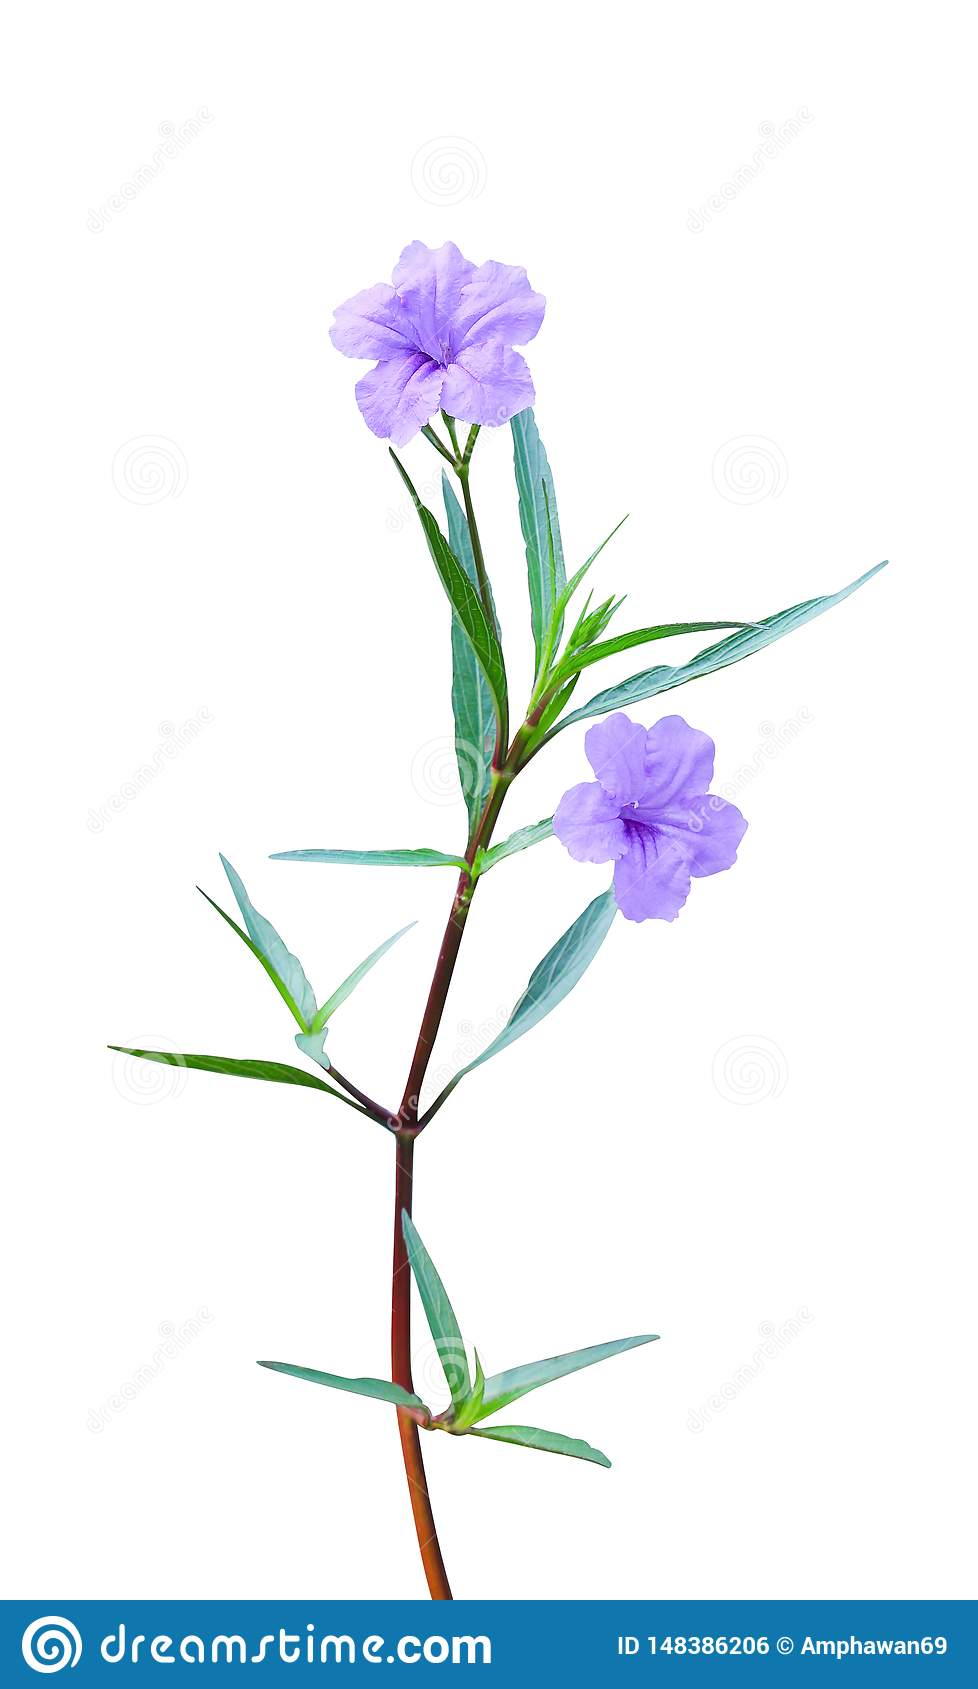 Colorful waterkanon or ruellia tuberosa blooming isolated on white background with clipping path , two purple flowers with green